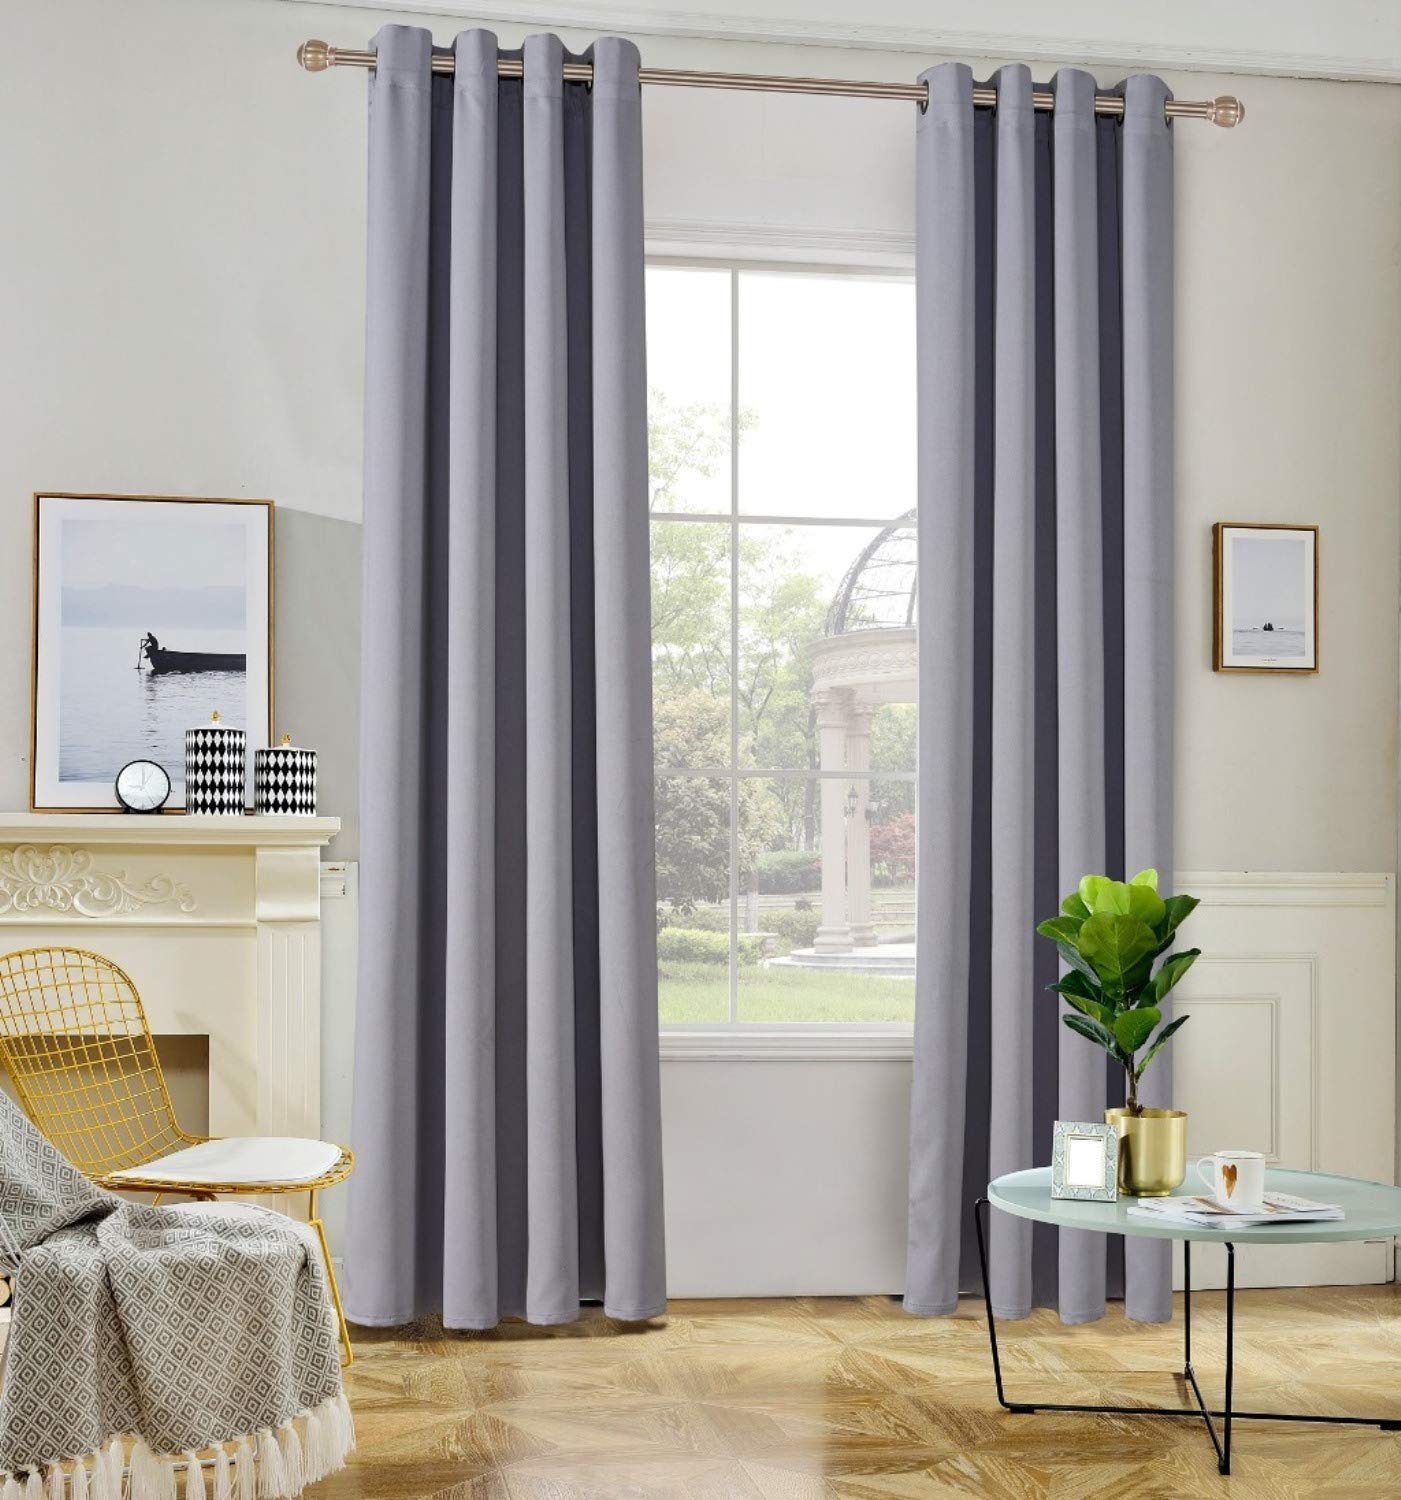 TEMNETU Bedroom Curtains, Blackout Thermal Insulated Window Curtain Panels for Living Room,2 Panels (Beige, W42x63L) KaiLan curtains Co. Ltd.